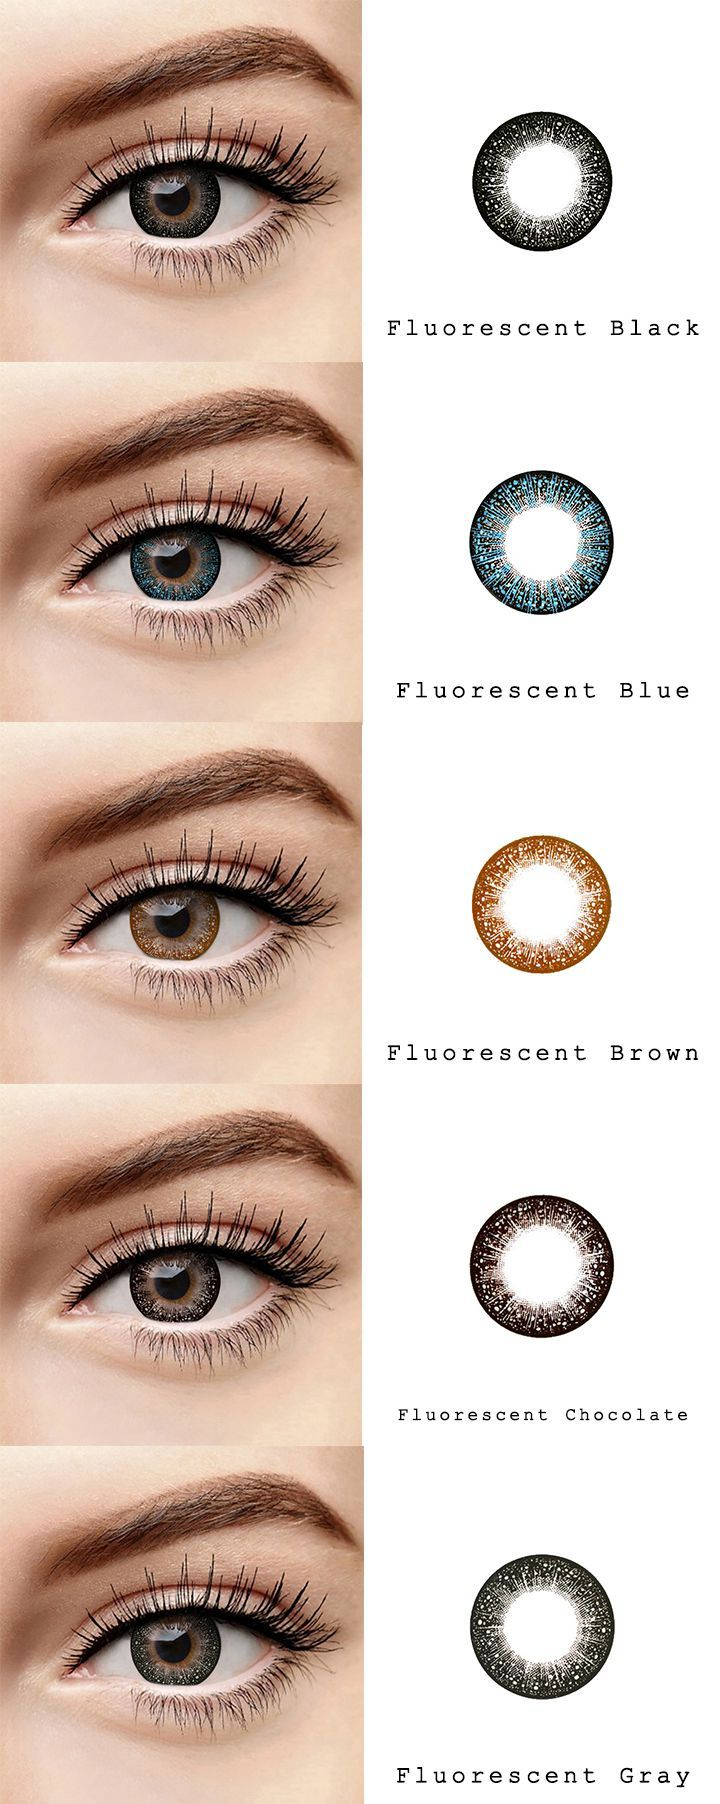 Microeyelenses Com Onlineshop Fur Farbige Kontaktlinsen Fluoreszierende Serie Schwarz Bla Contact Lenses Online Contact Lenses Colored Brown Contact Lenses